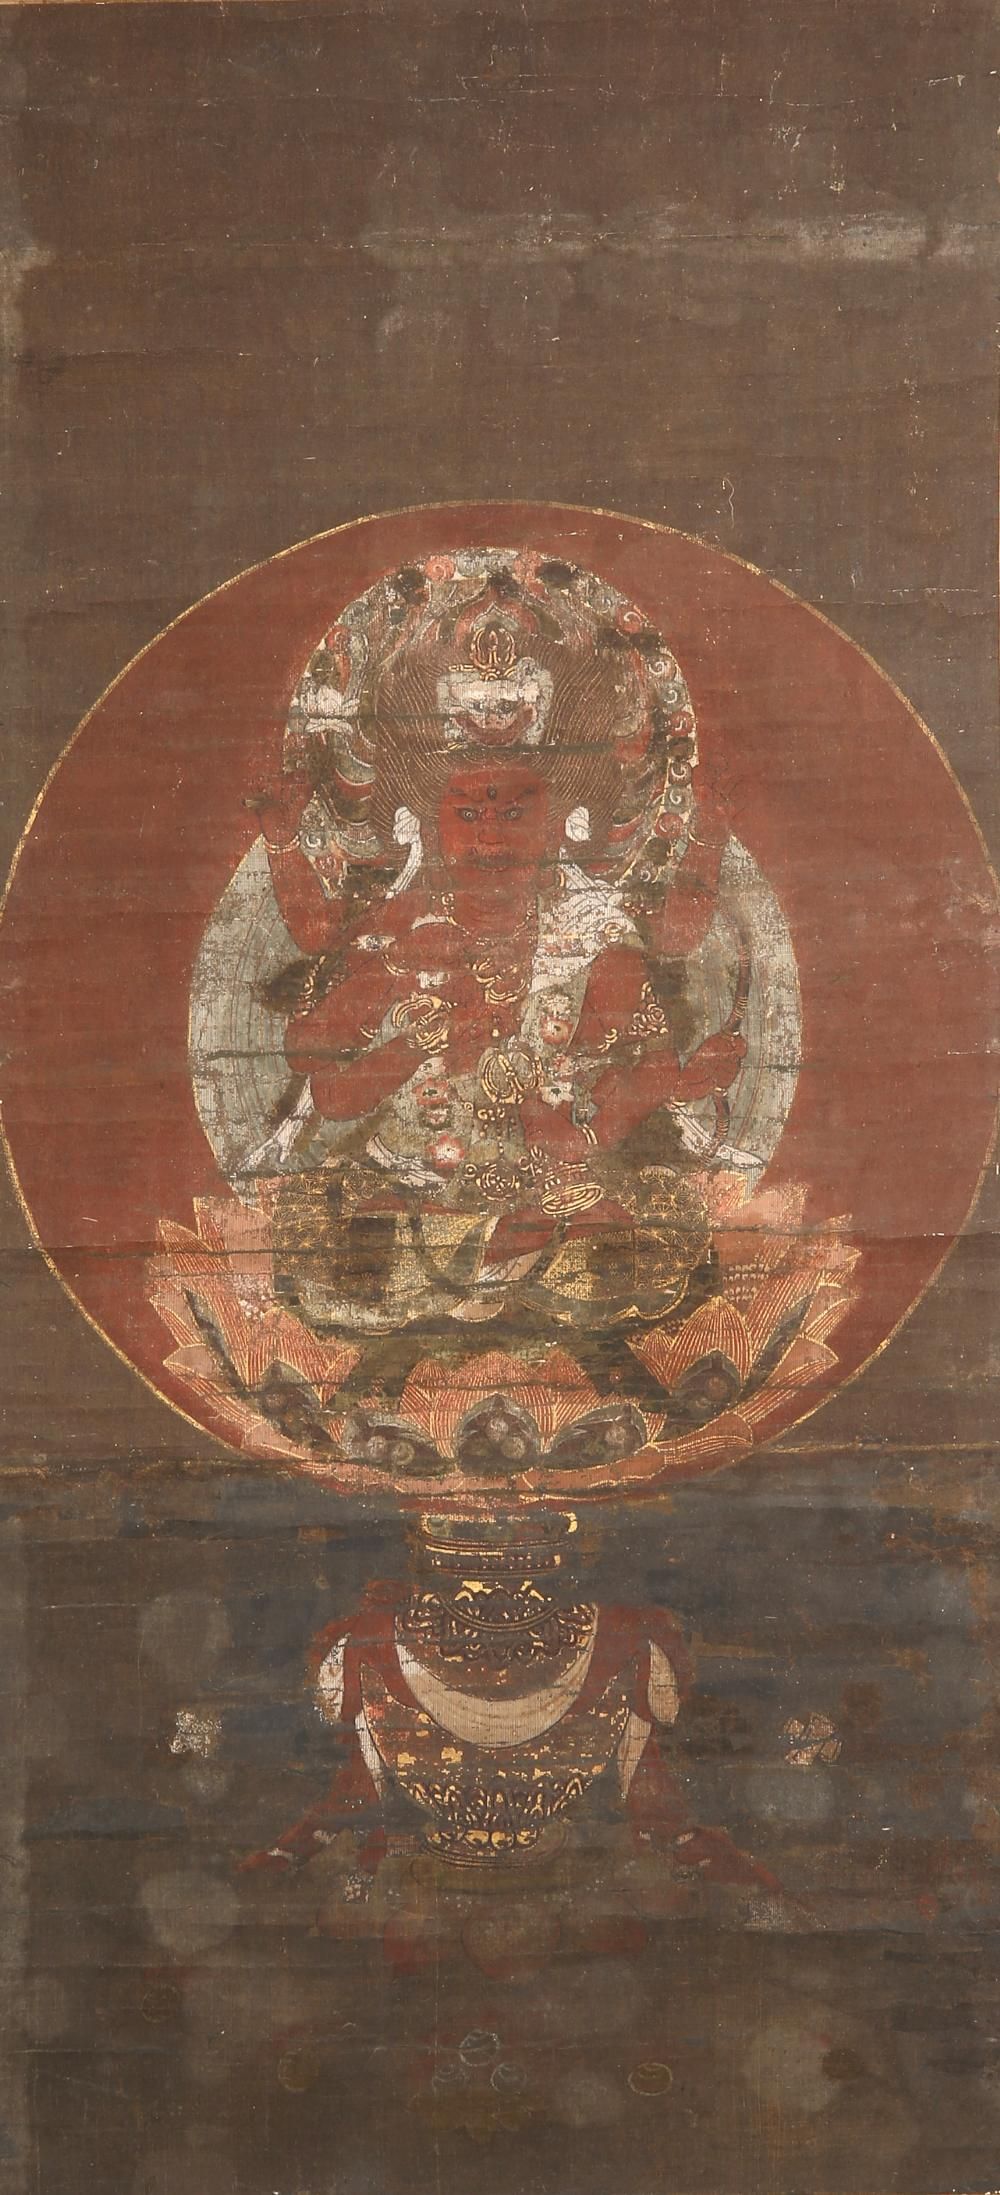 A JAPANESE BUDDHIST SCROLL PAINTING, KAKEMONO EDO PERIOD OR EARLIER, 18TH CENTURY OR EARLIER In